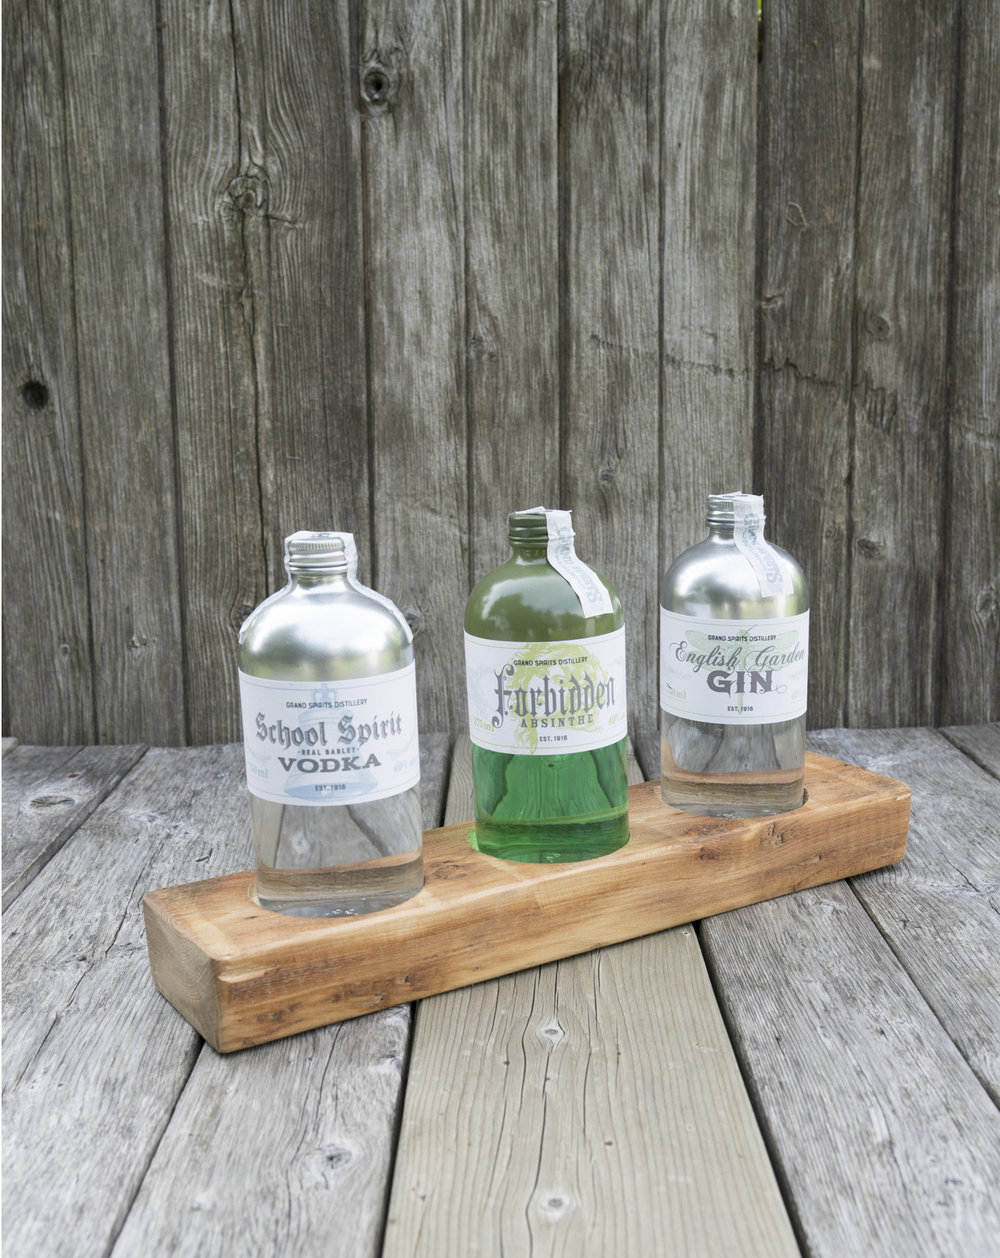 Spirits collection by Grand Valley Distillery including Forbidden Absinthe, English Garden Gin and School Spirit Vodka. Labels designed with vintage aesthetic.